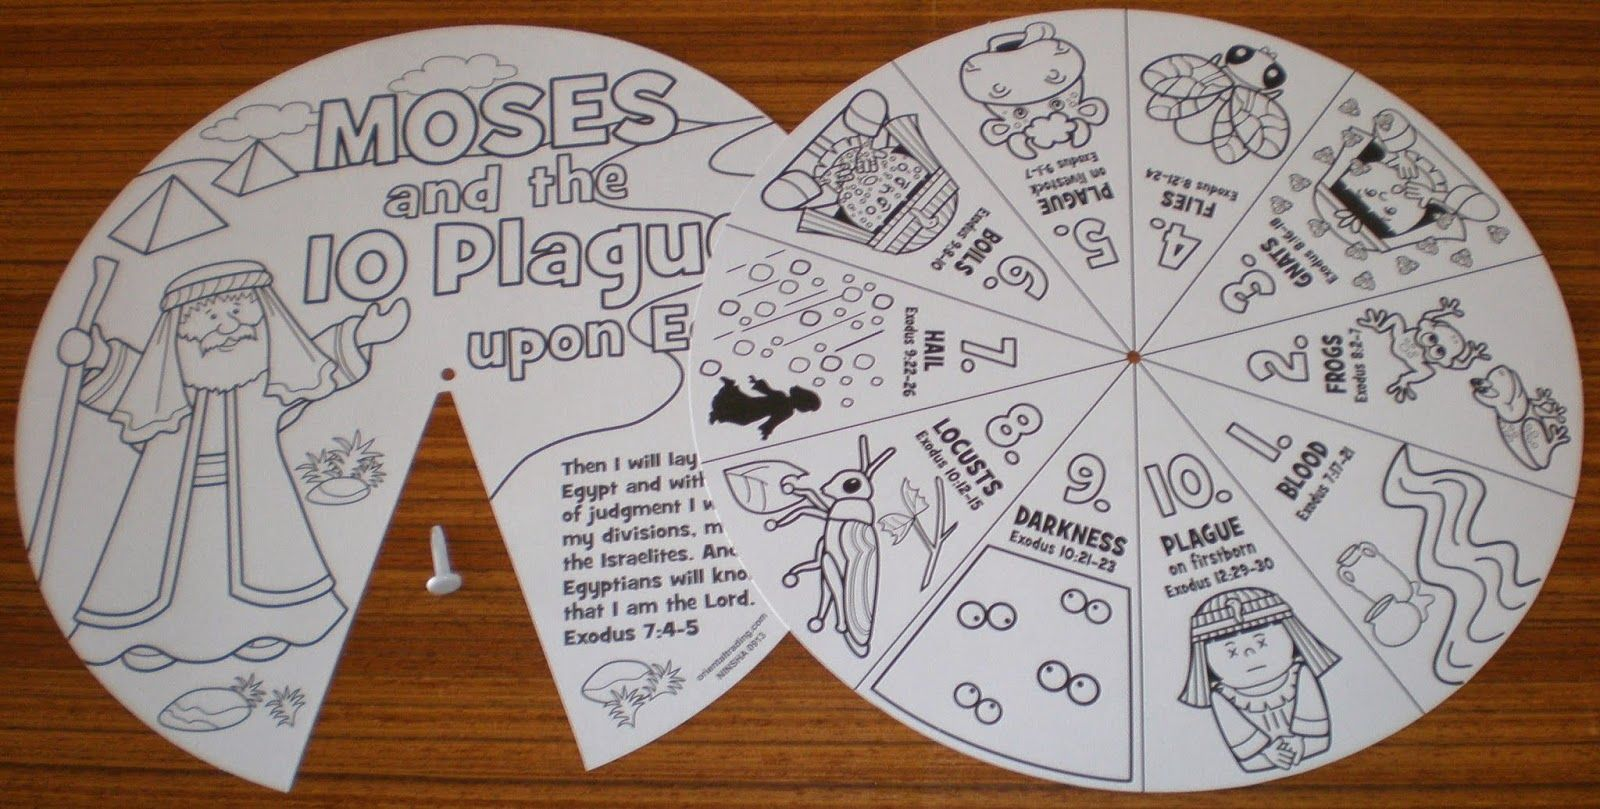 Petersham Bible Book Amp Tract Depot Colour Your Own 10 Plagues Wheel Moses Pinterest